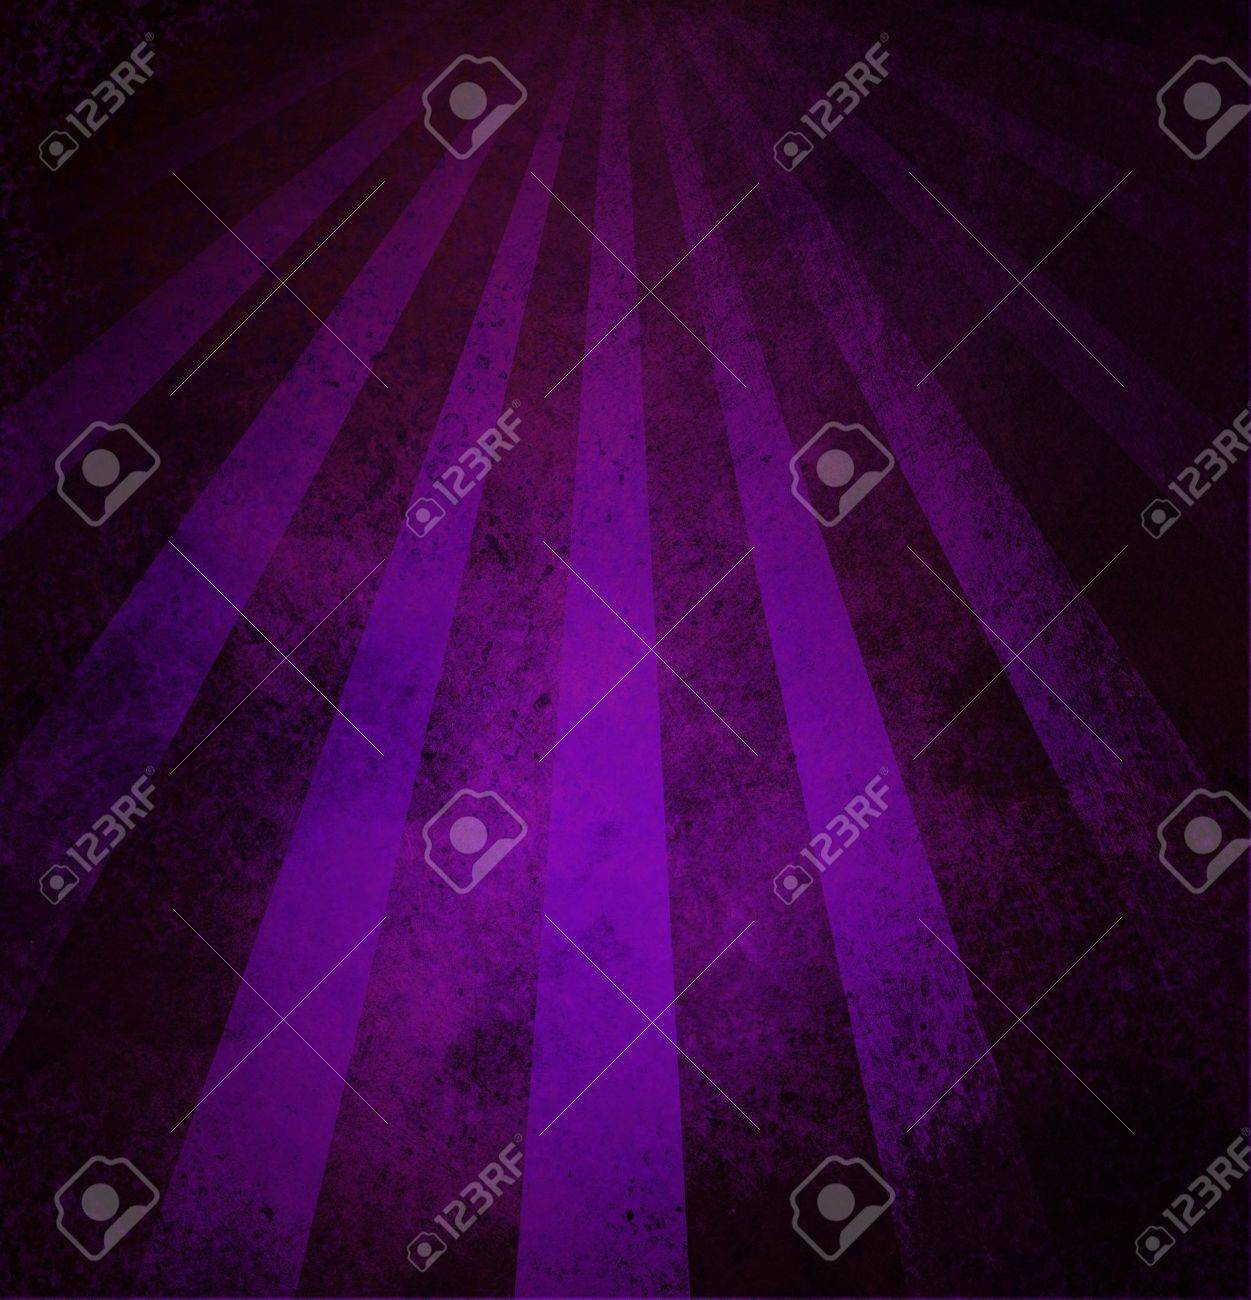 abstract purple background retro striped layout with old distressed vintage grunge background texture pattern for web design side bar banner or scrapbook page for birthday celebration or festivities Stock Photo - 17116233